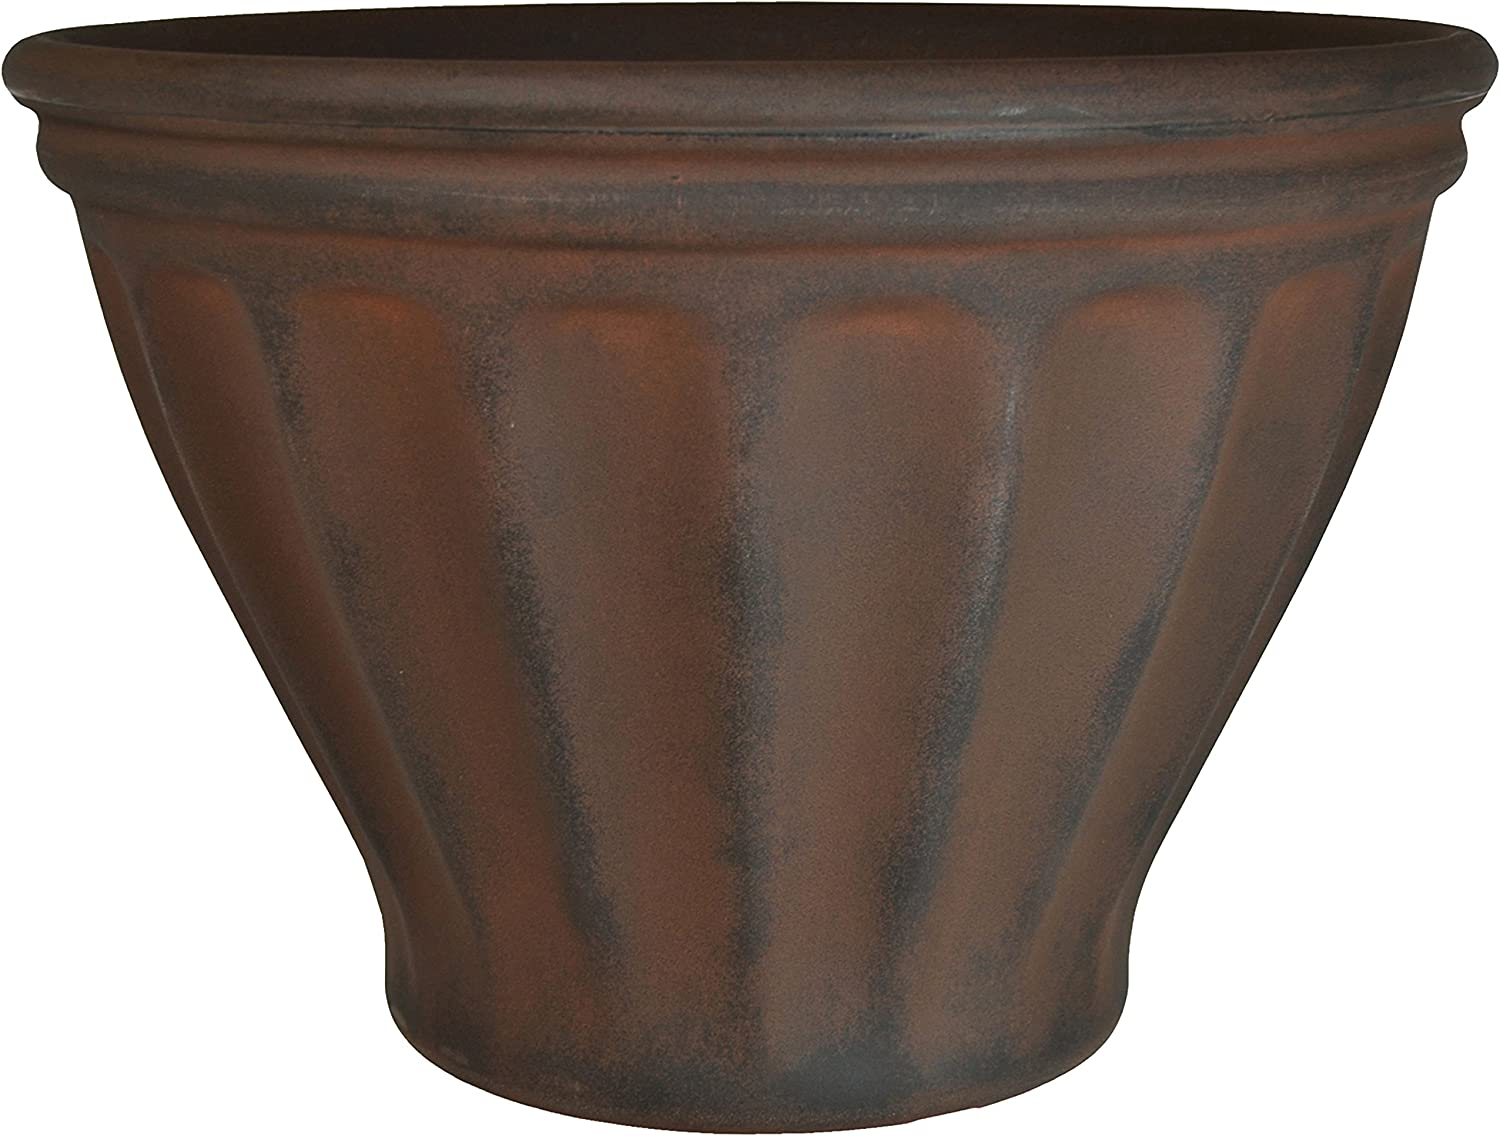 Sunnydaze Charlotte Flower Pot Planter, Outdoor/Indoor Extra-Durable Double-Walled Polyresin with UV-Resistant Rust Finish, Single, 16-Inch Diameter